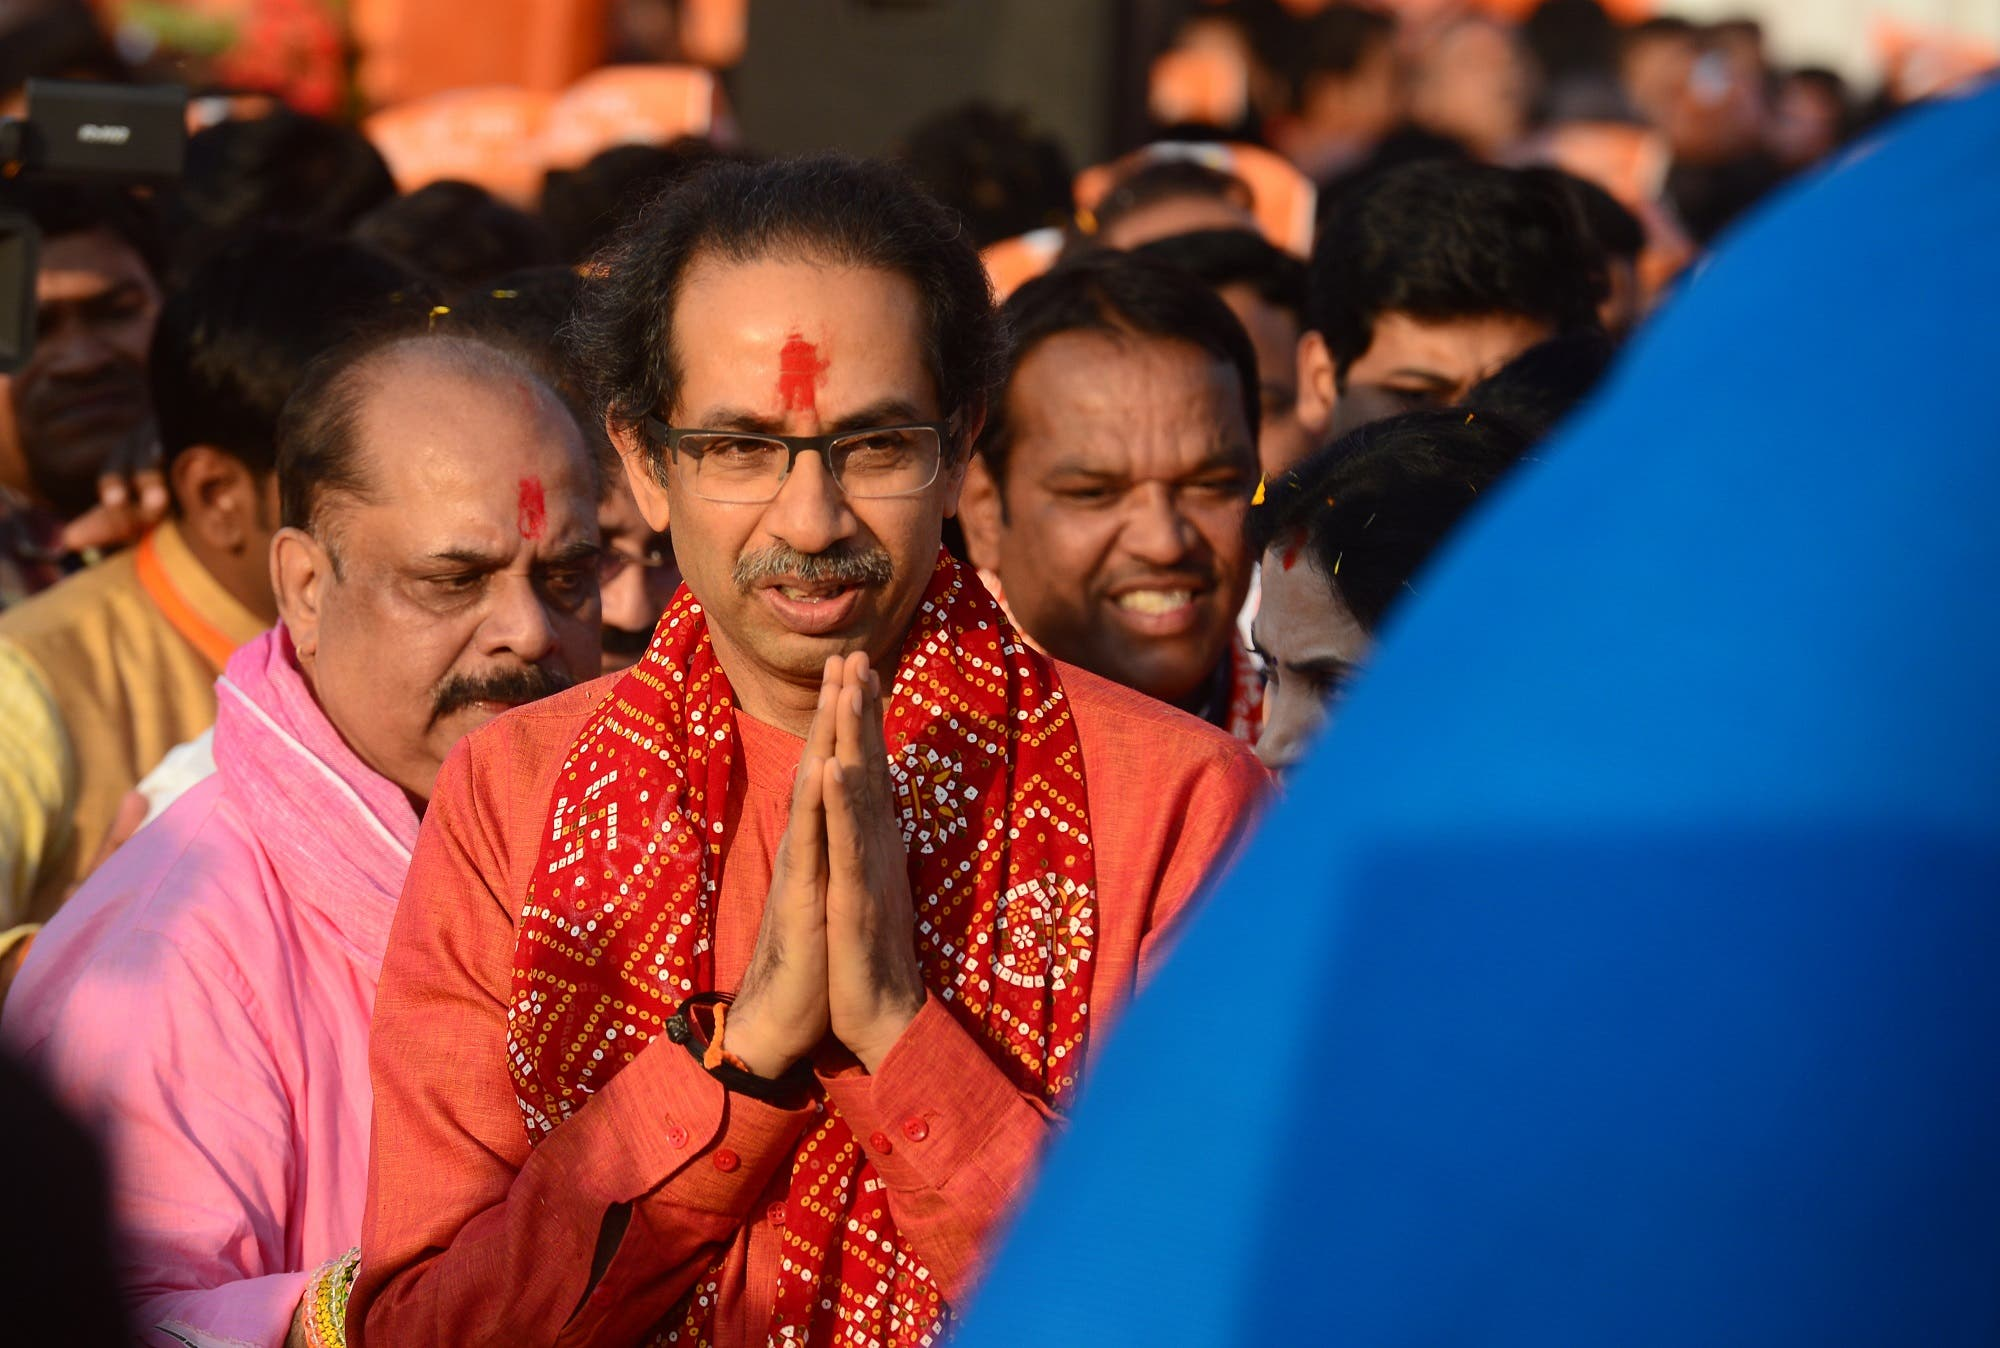 Shiv Sena chief Uddhav Thackeray arrives to attend an event in Ayodhya on November 24, 2018. (AFP)